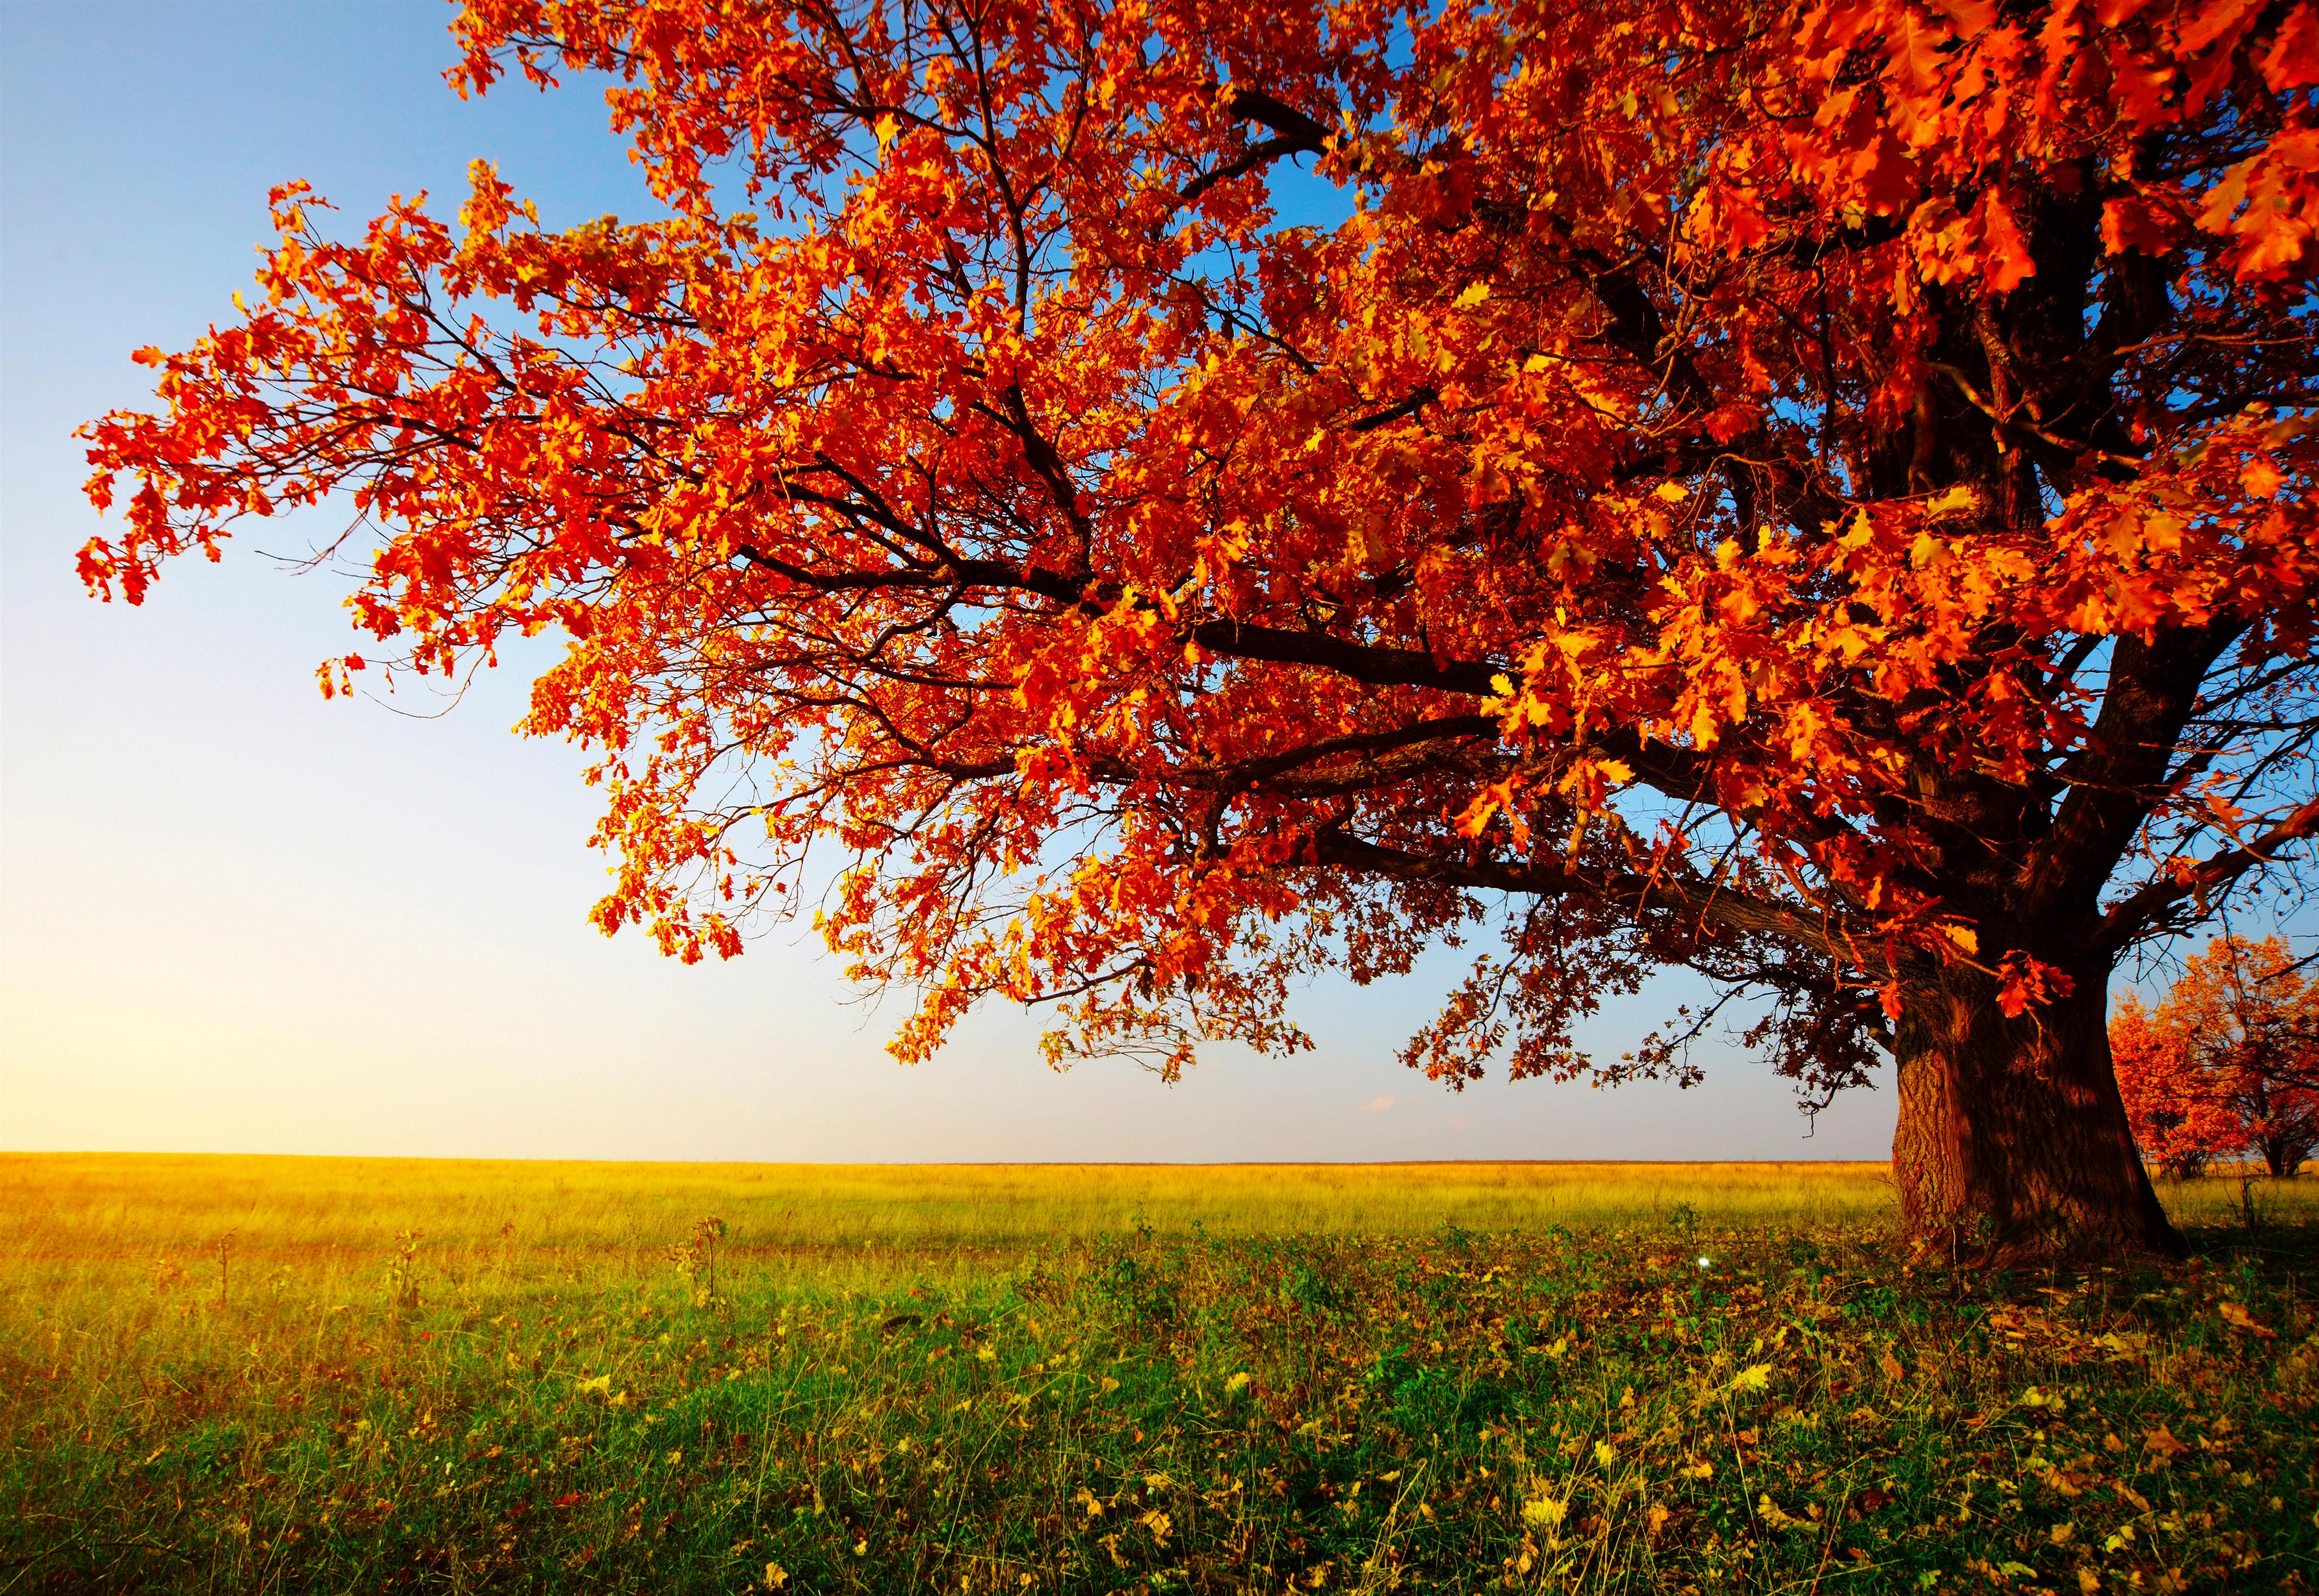 Wallpaper Images Of Fall Trees Lined Lake Autumn Tree Wallpaper Autumn Tree Wide Hd Wallpaper 21601